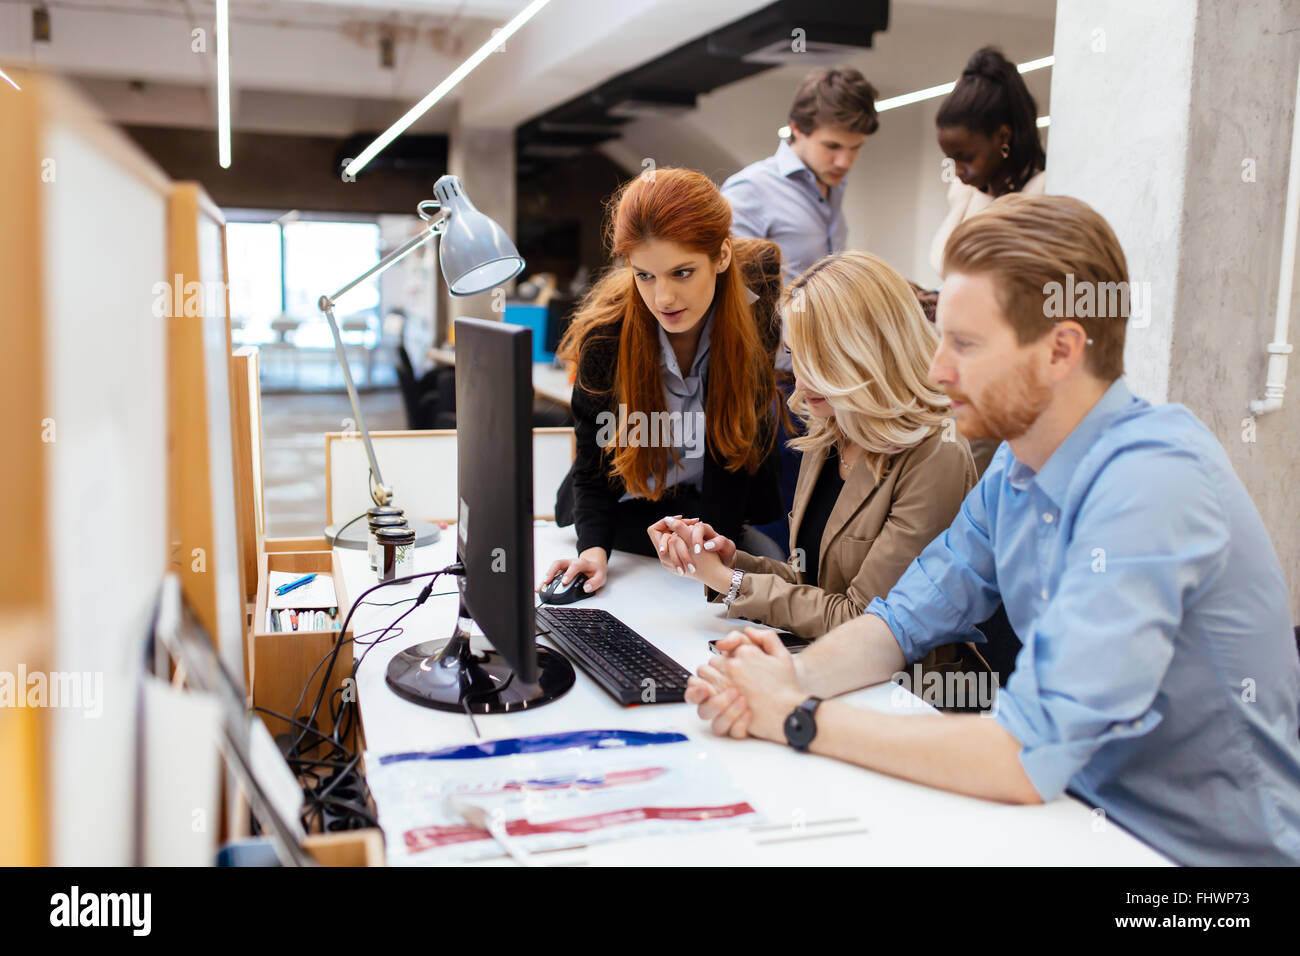 Lifestyle of businesspeople in modern office - Stock Image